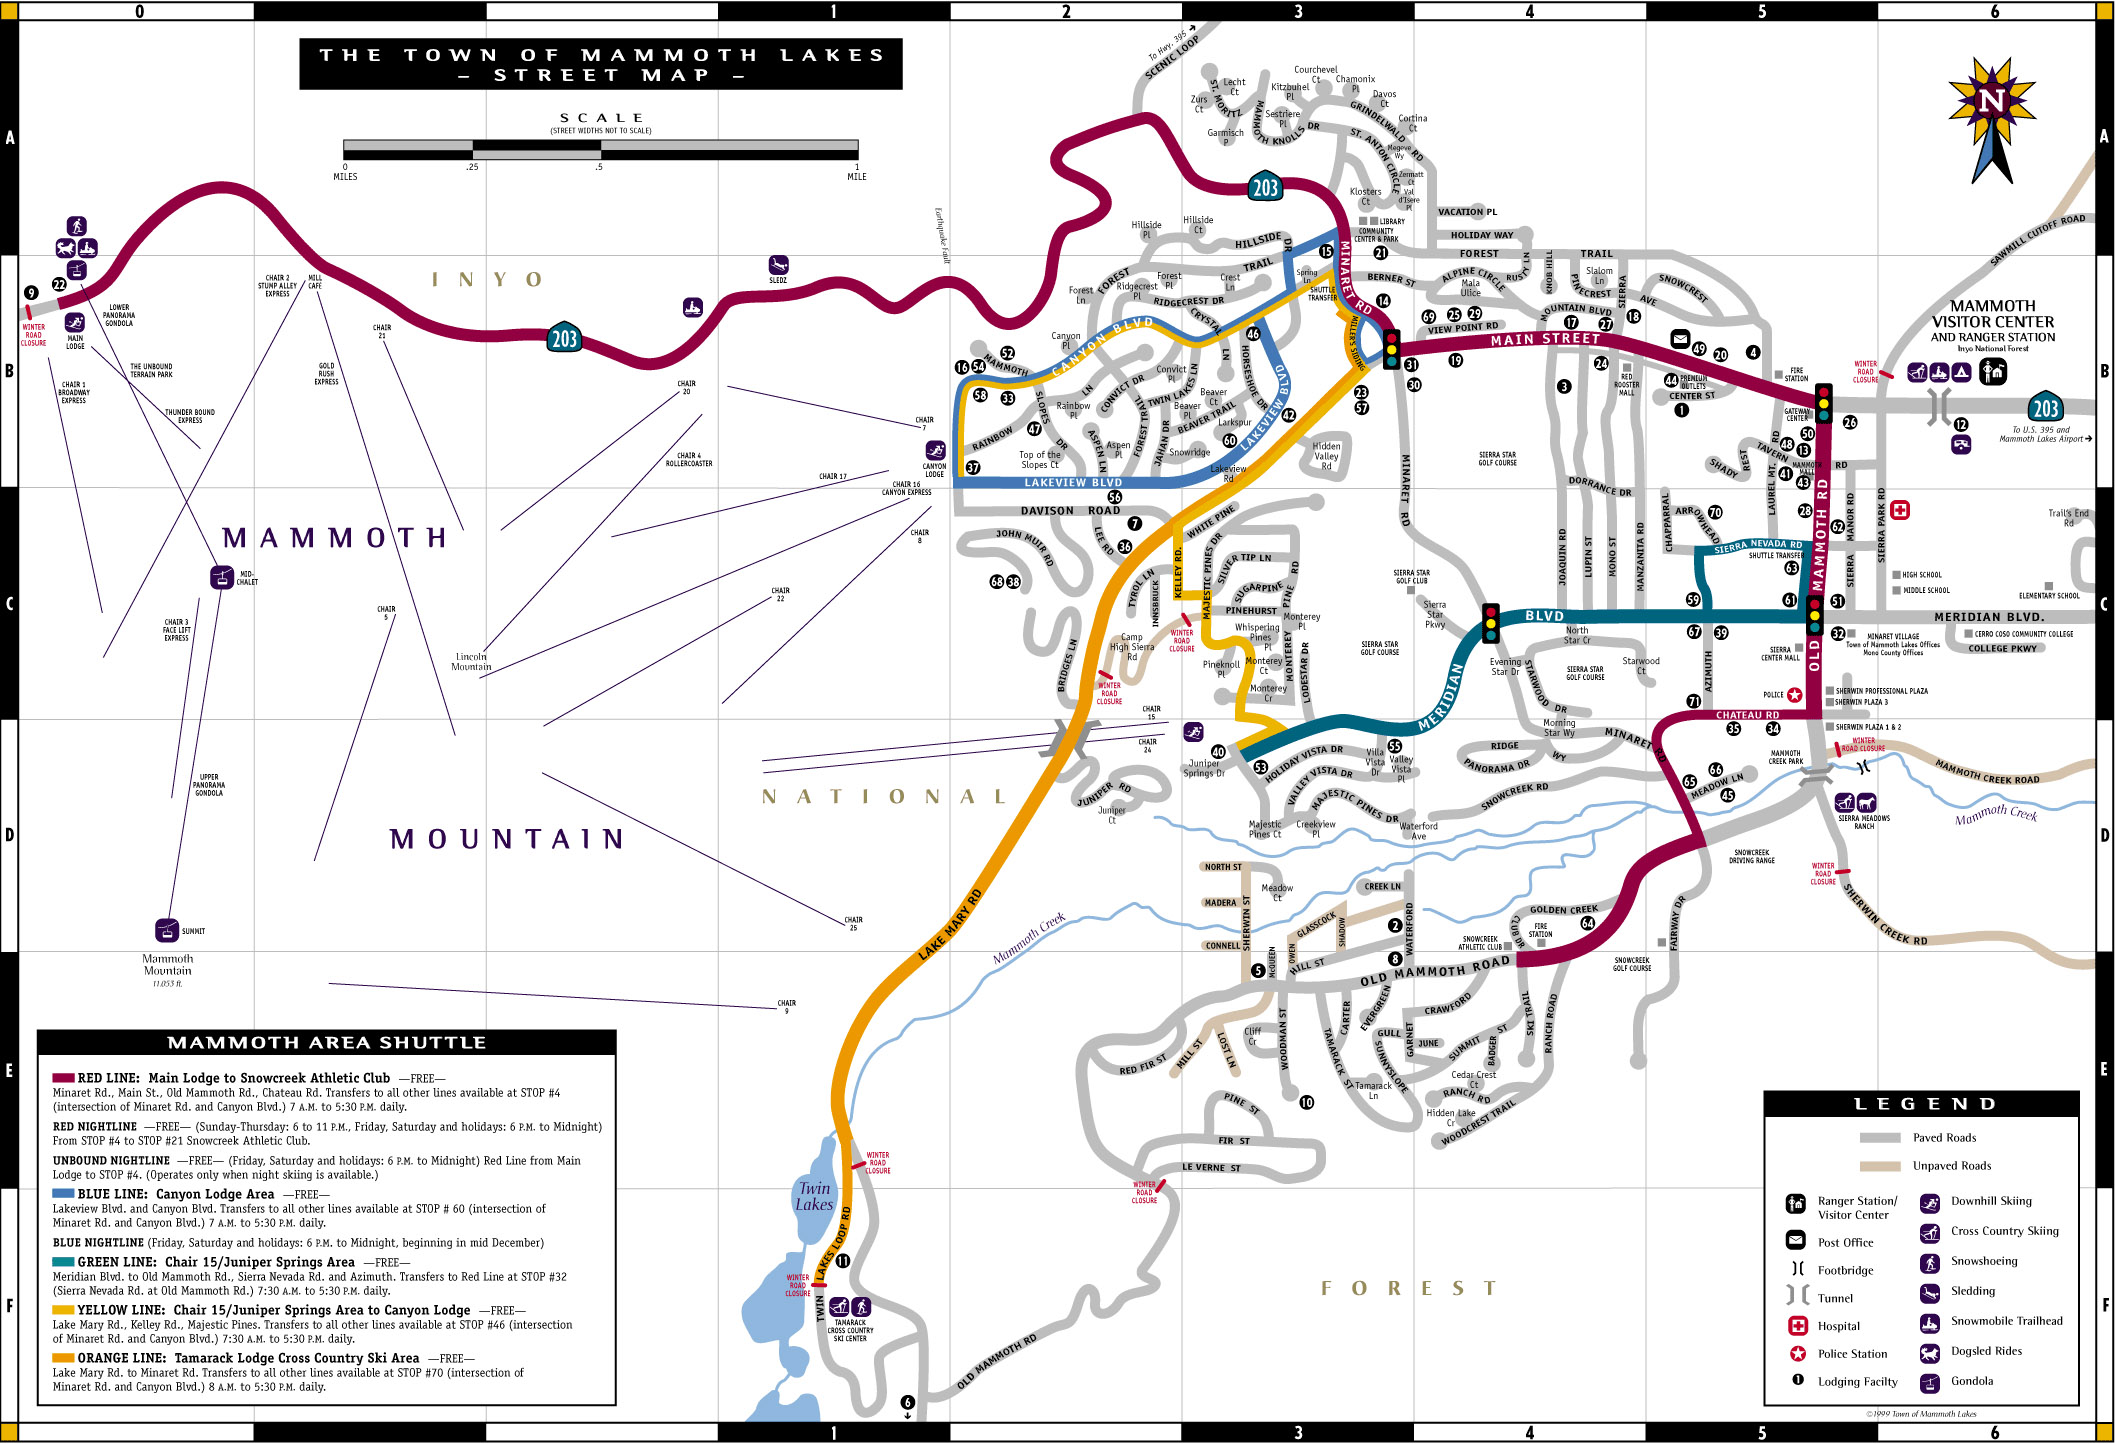 mammoth bike park map with Mammoth Trail Maps on Jackson Hole Mountain Resort additionally Ride Report Glass Mountain Ridge Mammoth Lakes Ca as well Thing 1 moreover California grand canyon route66 in addition Norris Geyser Basin Tour.